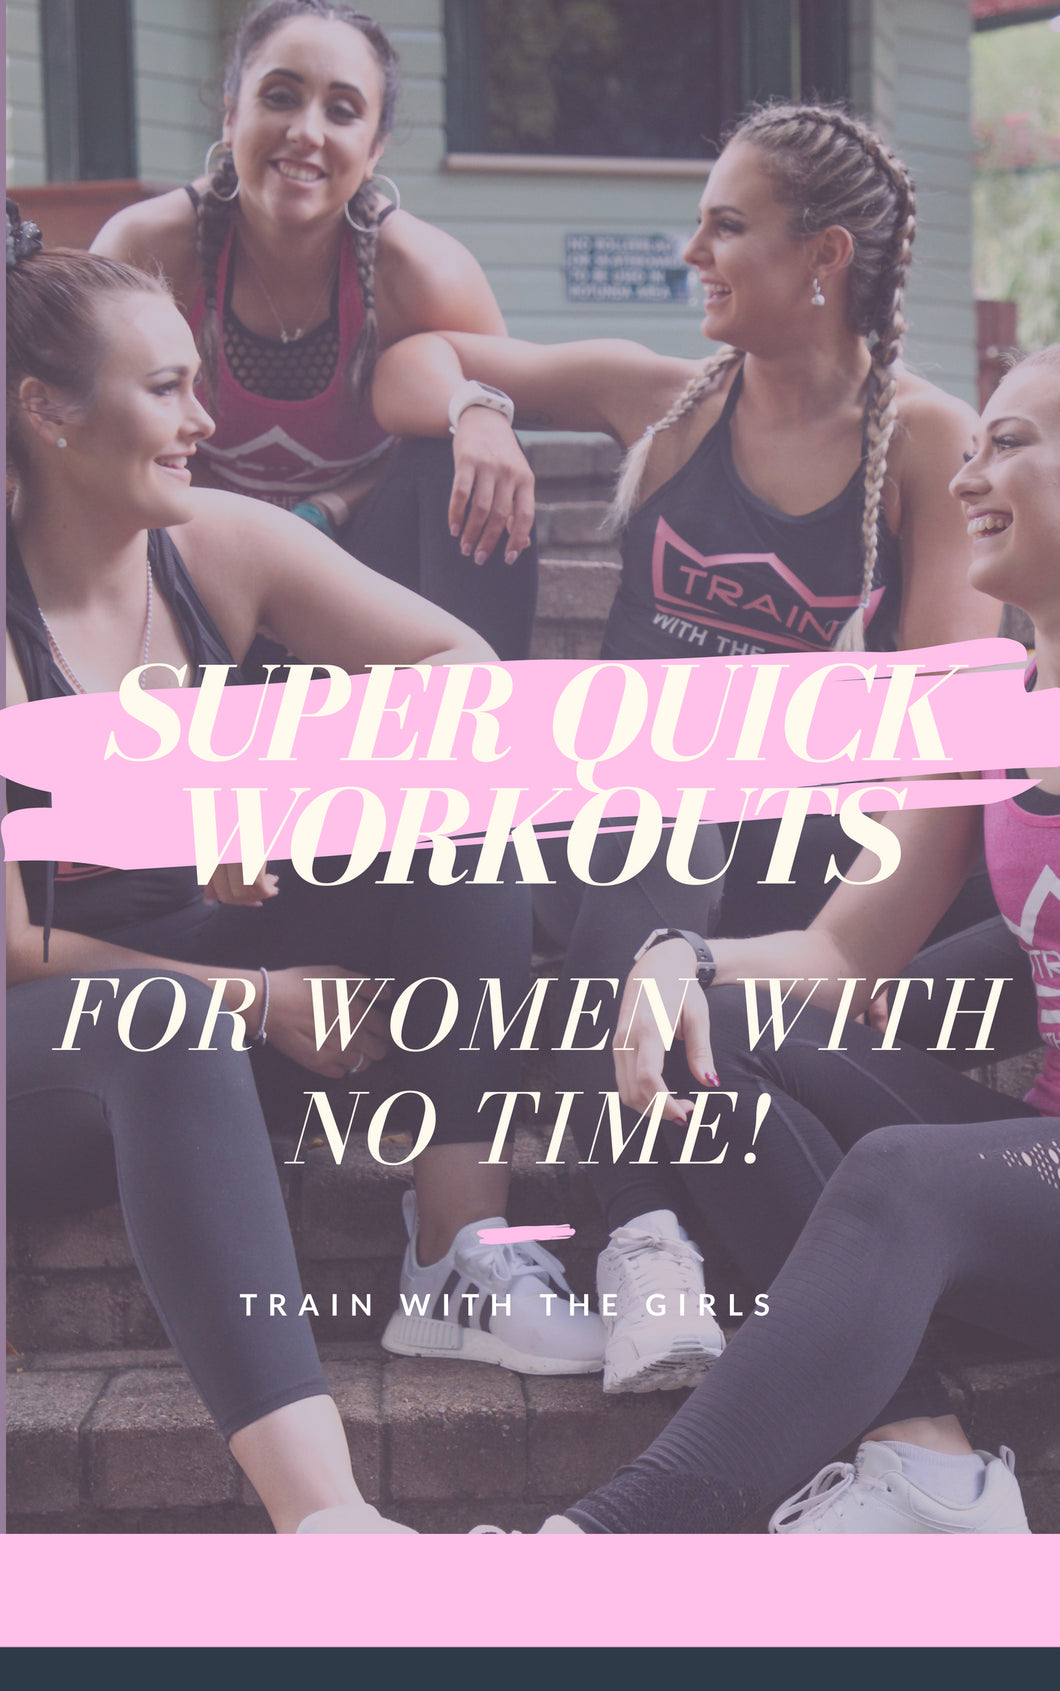 Super Quick Workouts For Women With No Time! Ebook